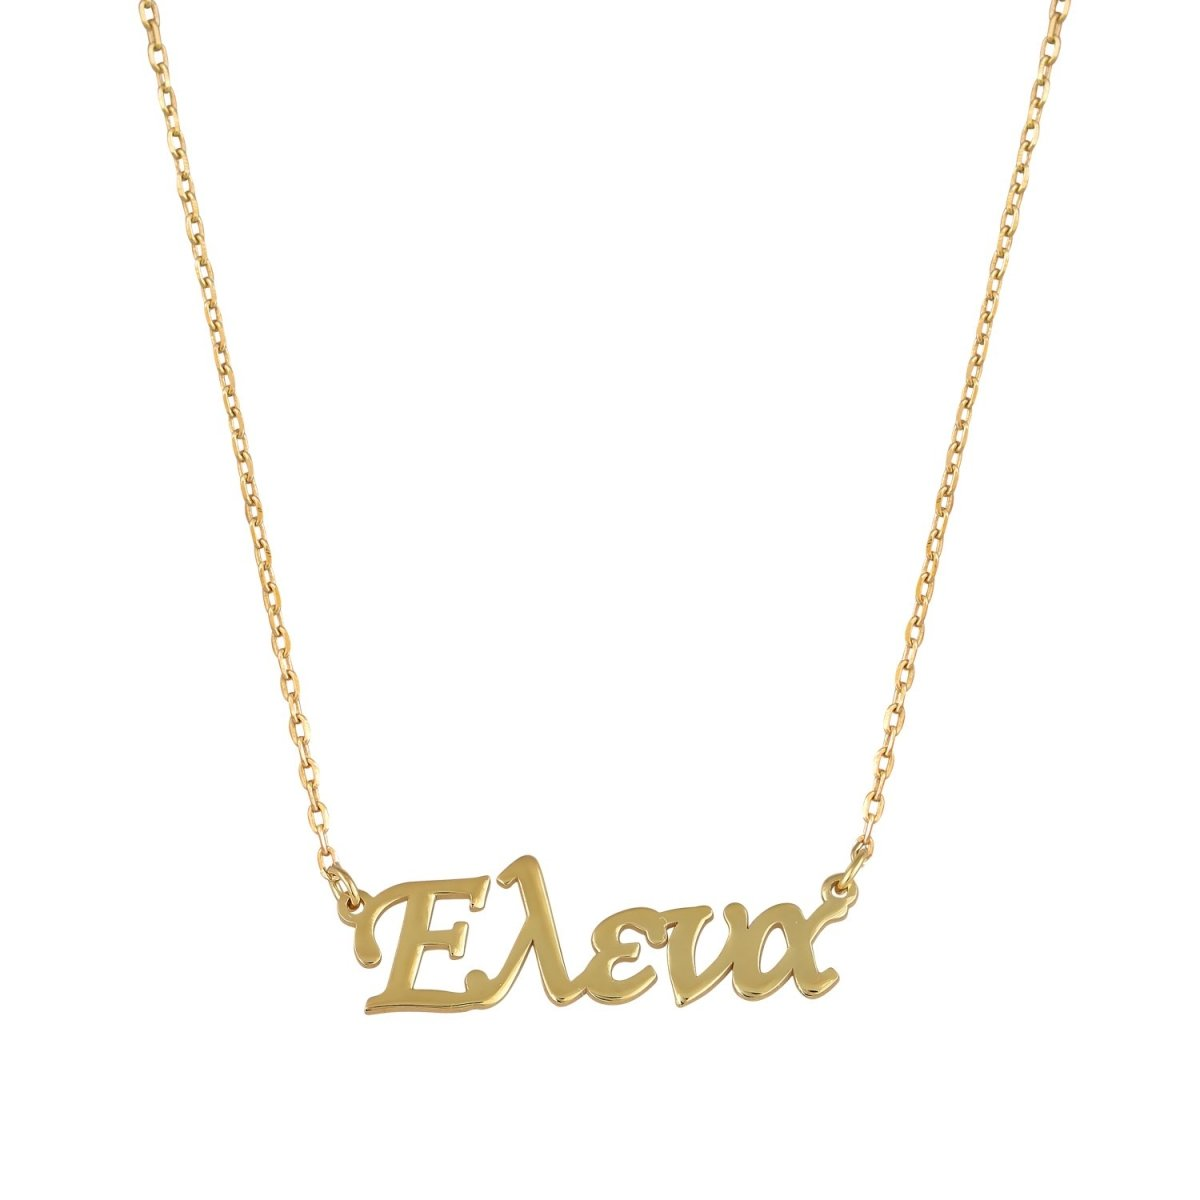 Name Elena GM109Y Made of Gold Plated Silver - Goldy Jewelry Store